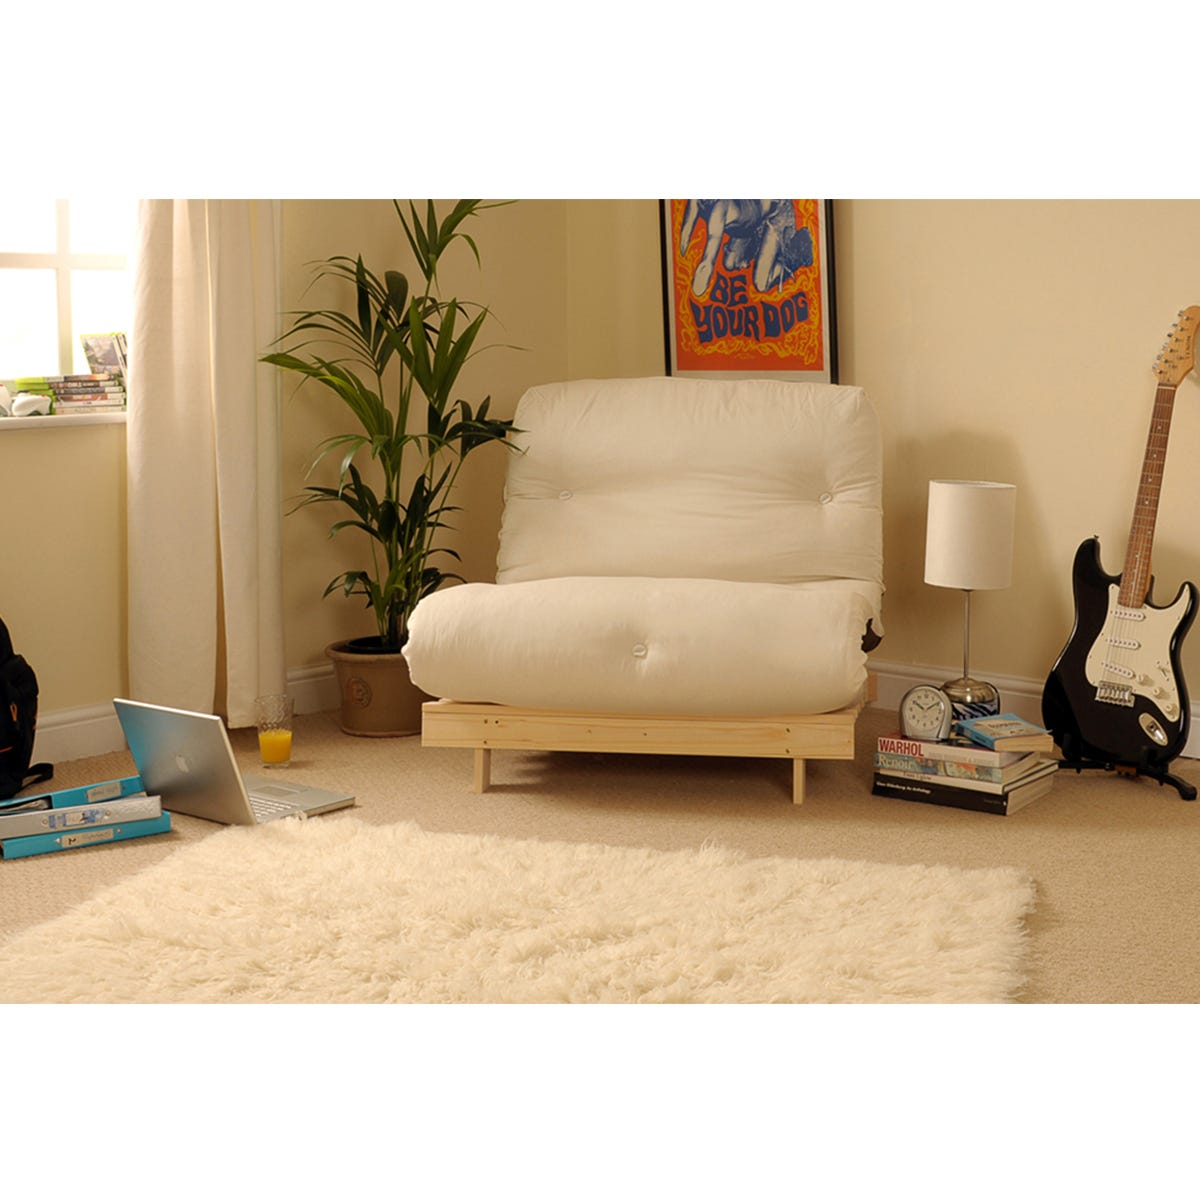 Albury Small Single Sofa Bed Set With Tufted Mattress - Natural